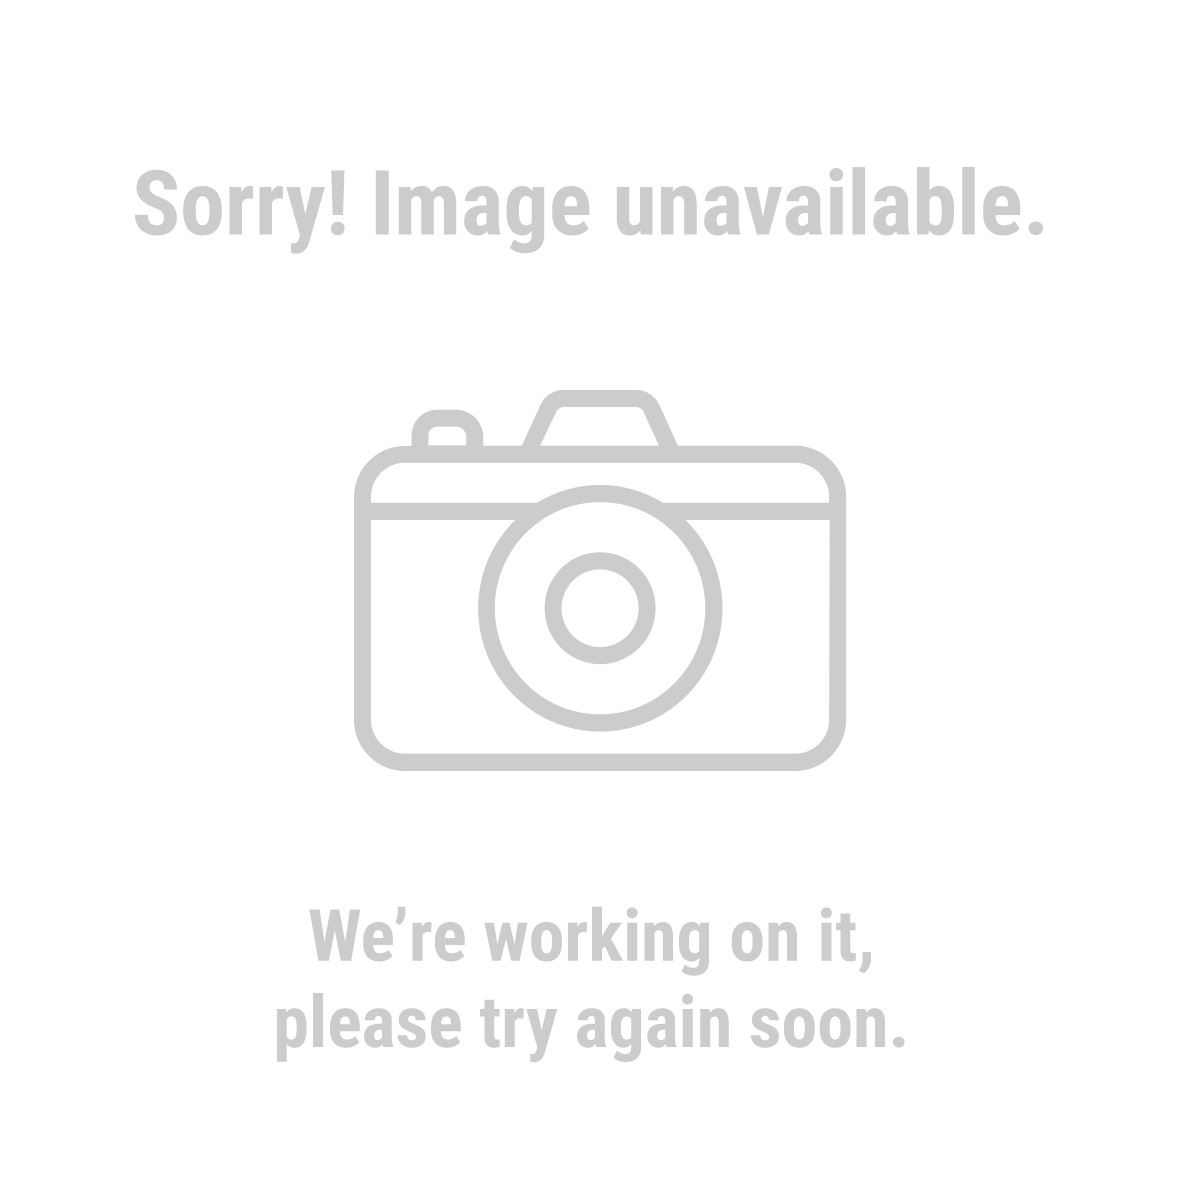 4 oz gorilla glue. Black Bedroom Furniture Sets. Home Design Ideas